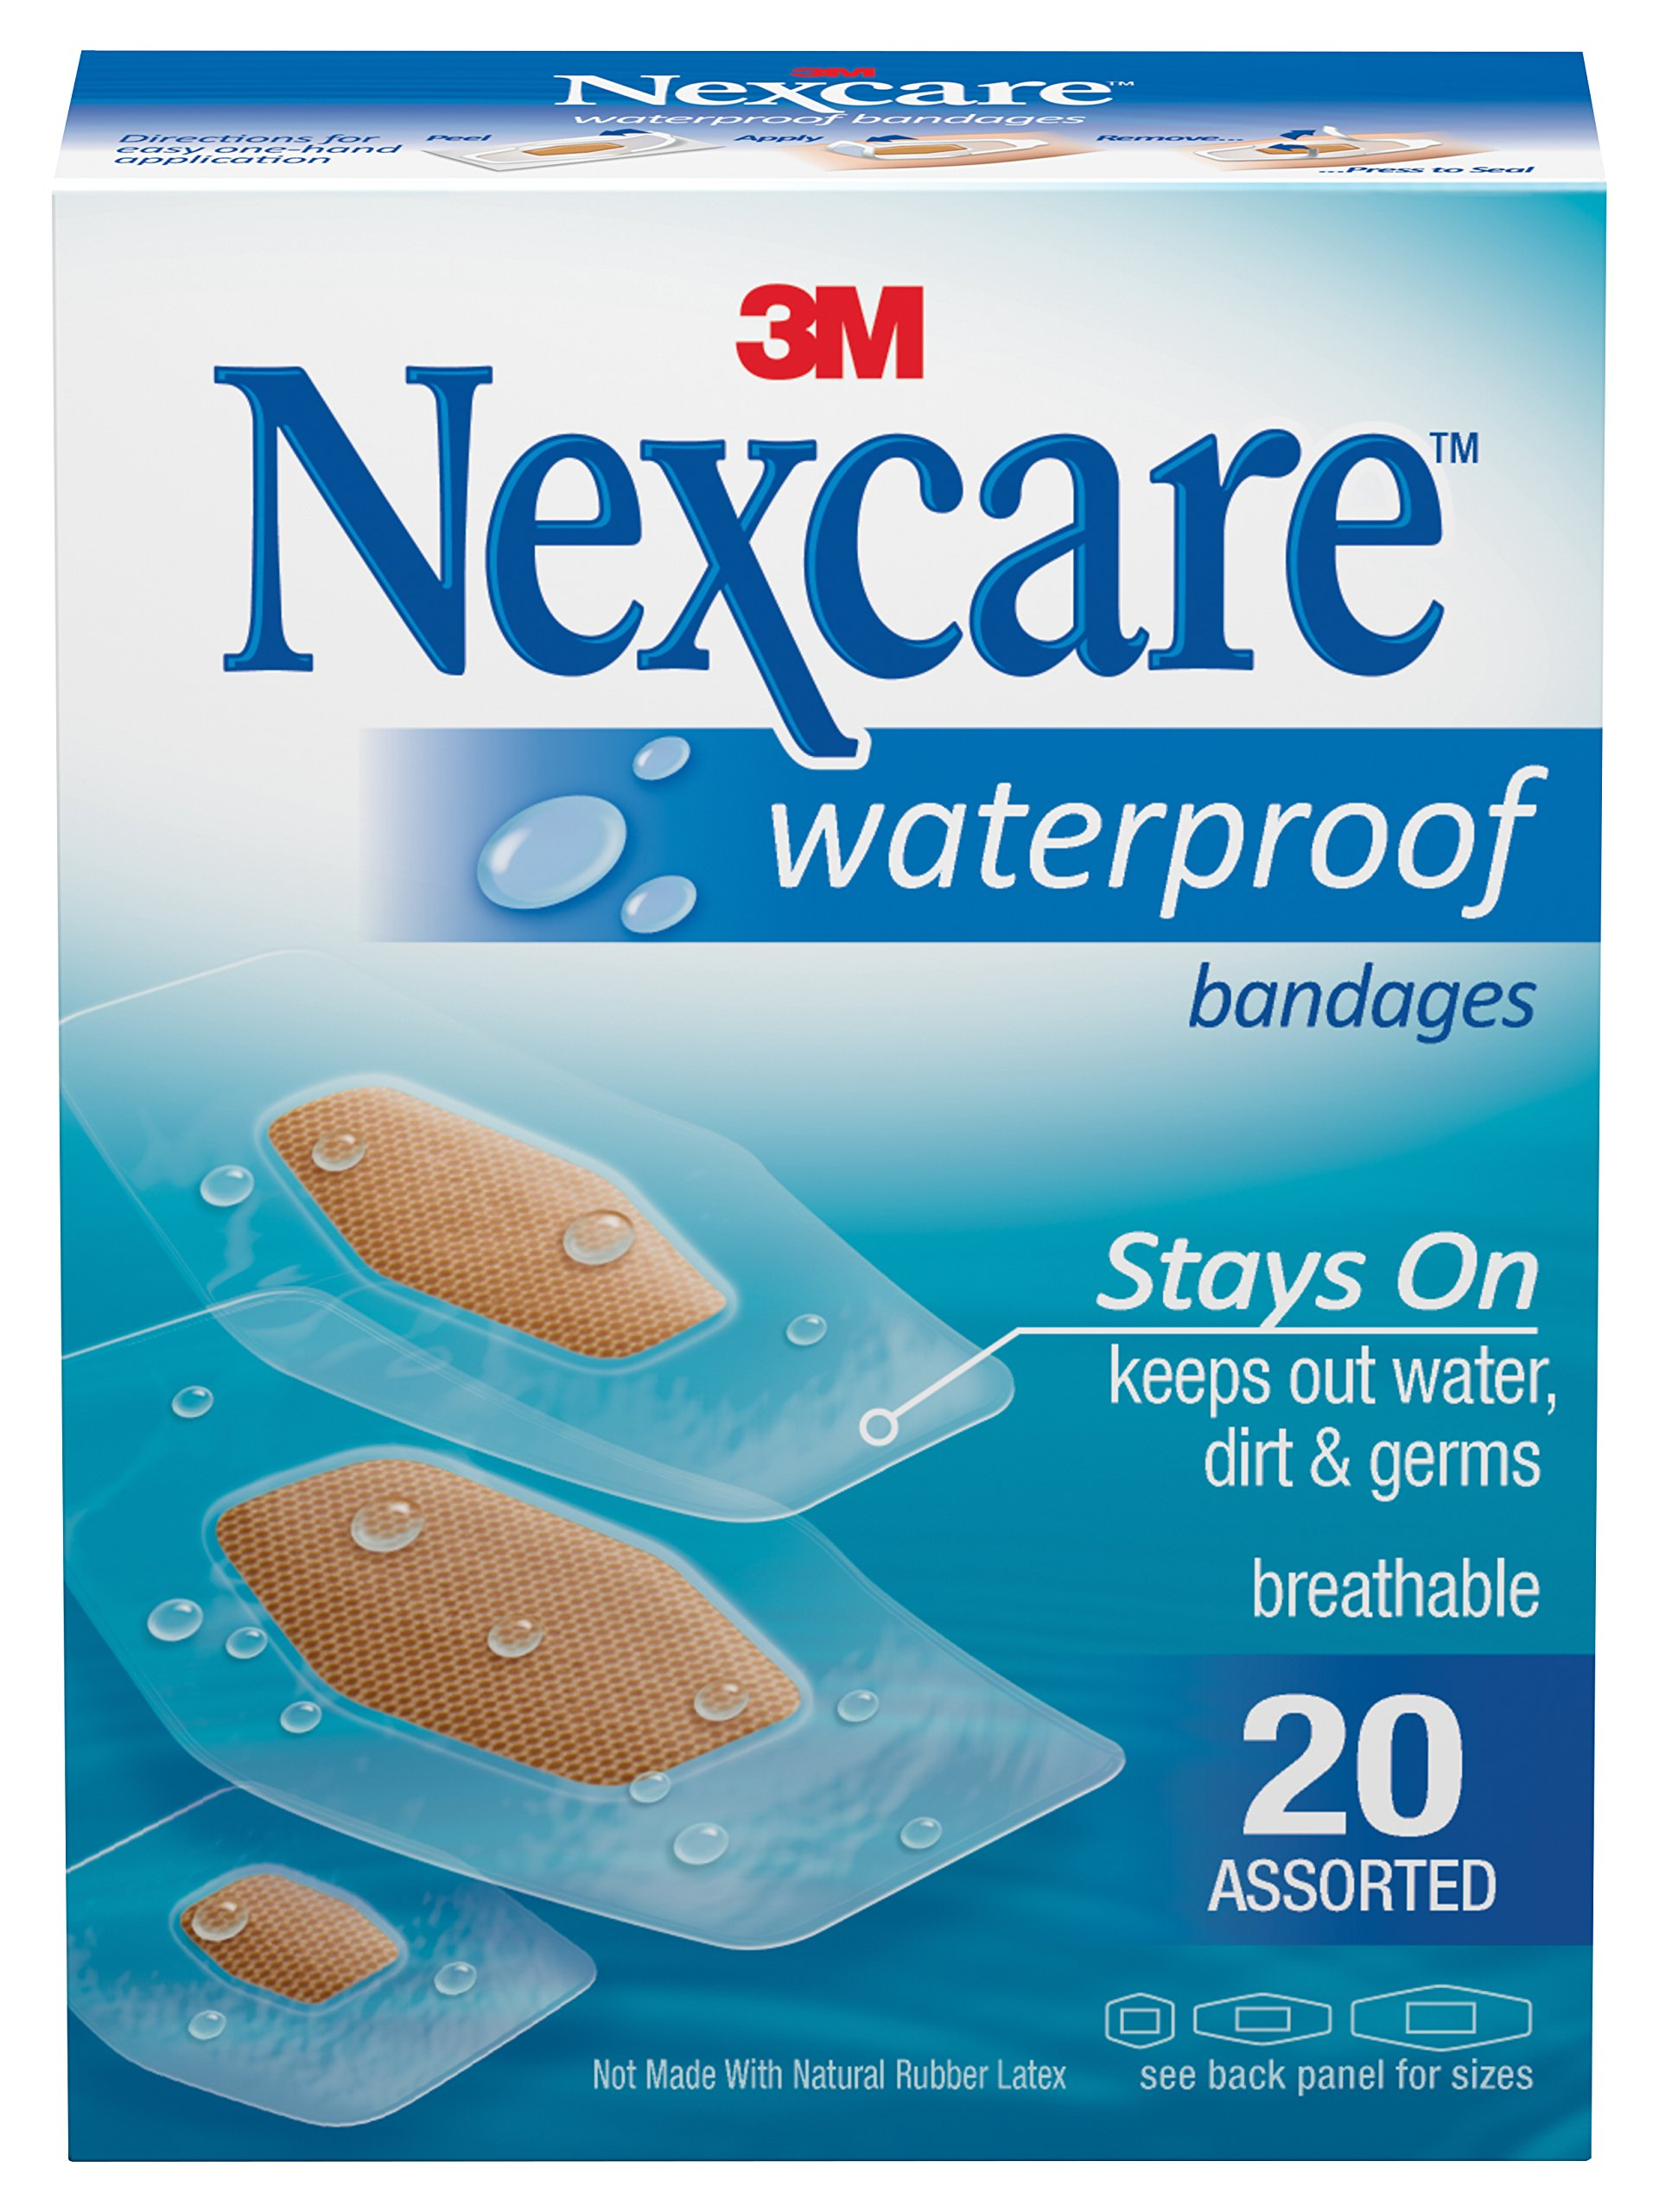 Nexcare Waterproof Clear Bandages, Dirtproof, Germproof, Ultra-thin and Comfortable, Assorted Sizes, 20 Count